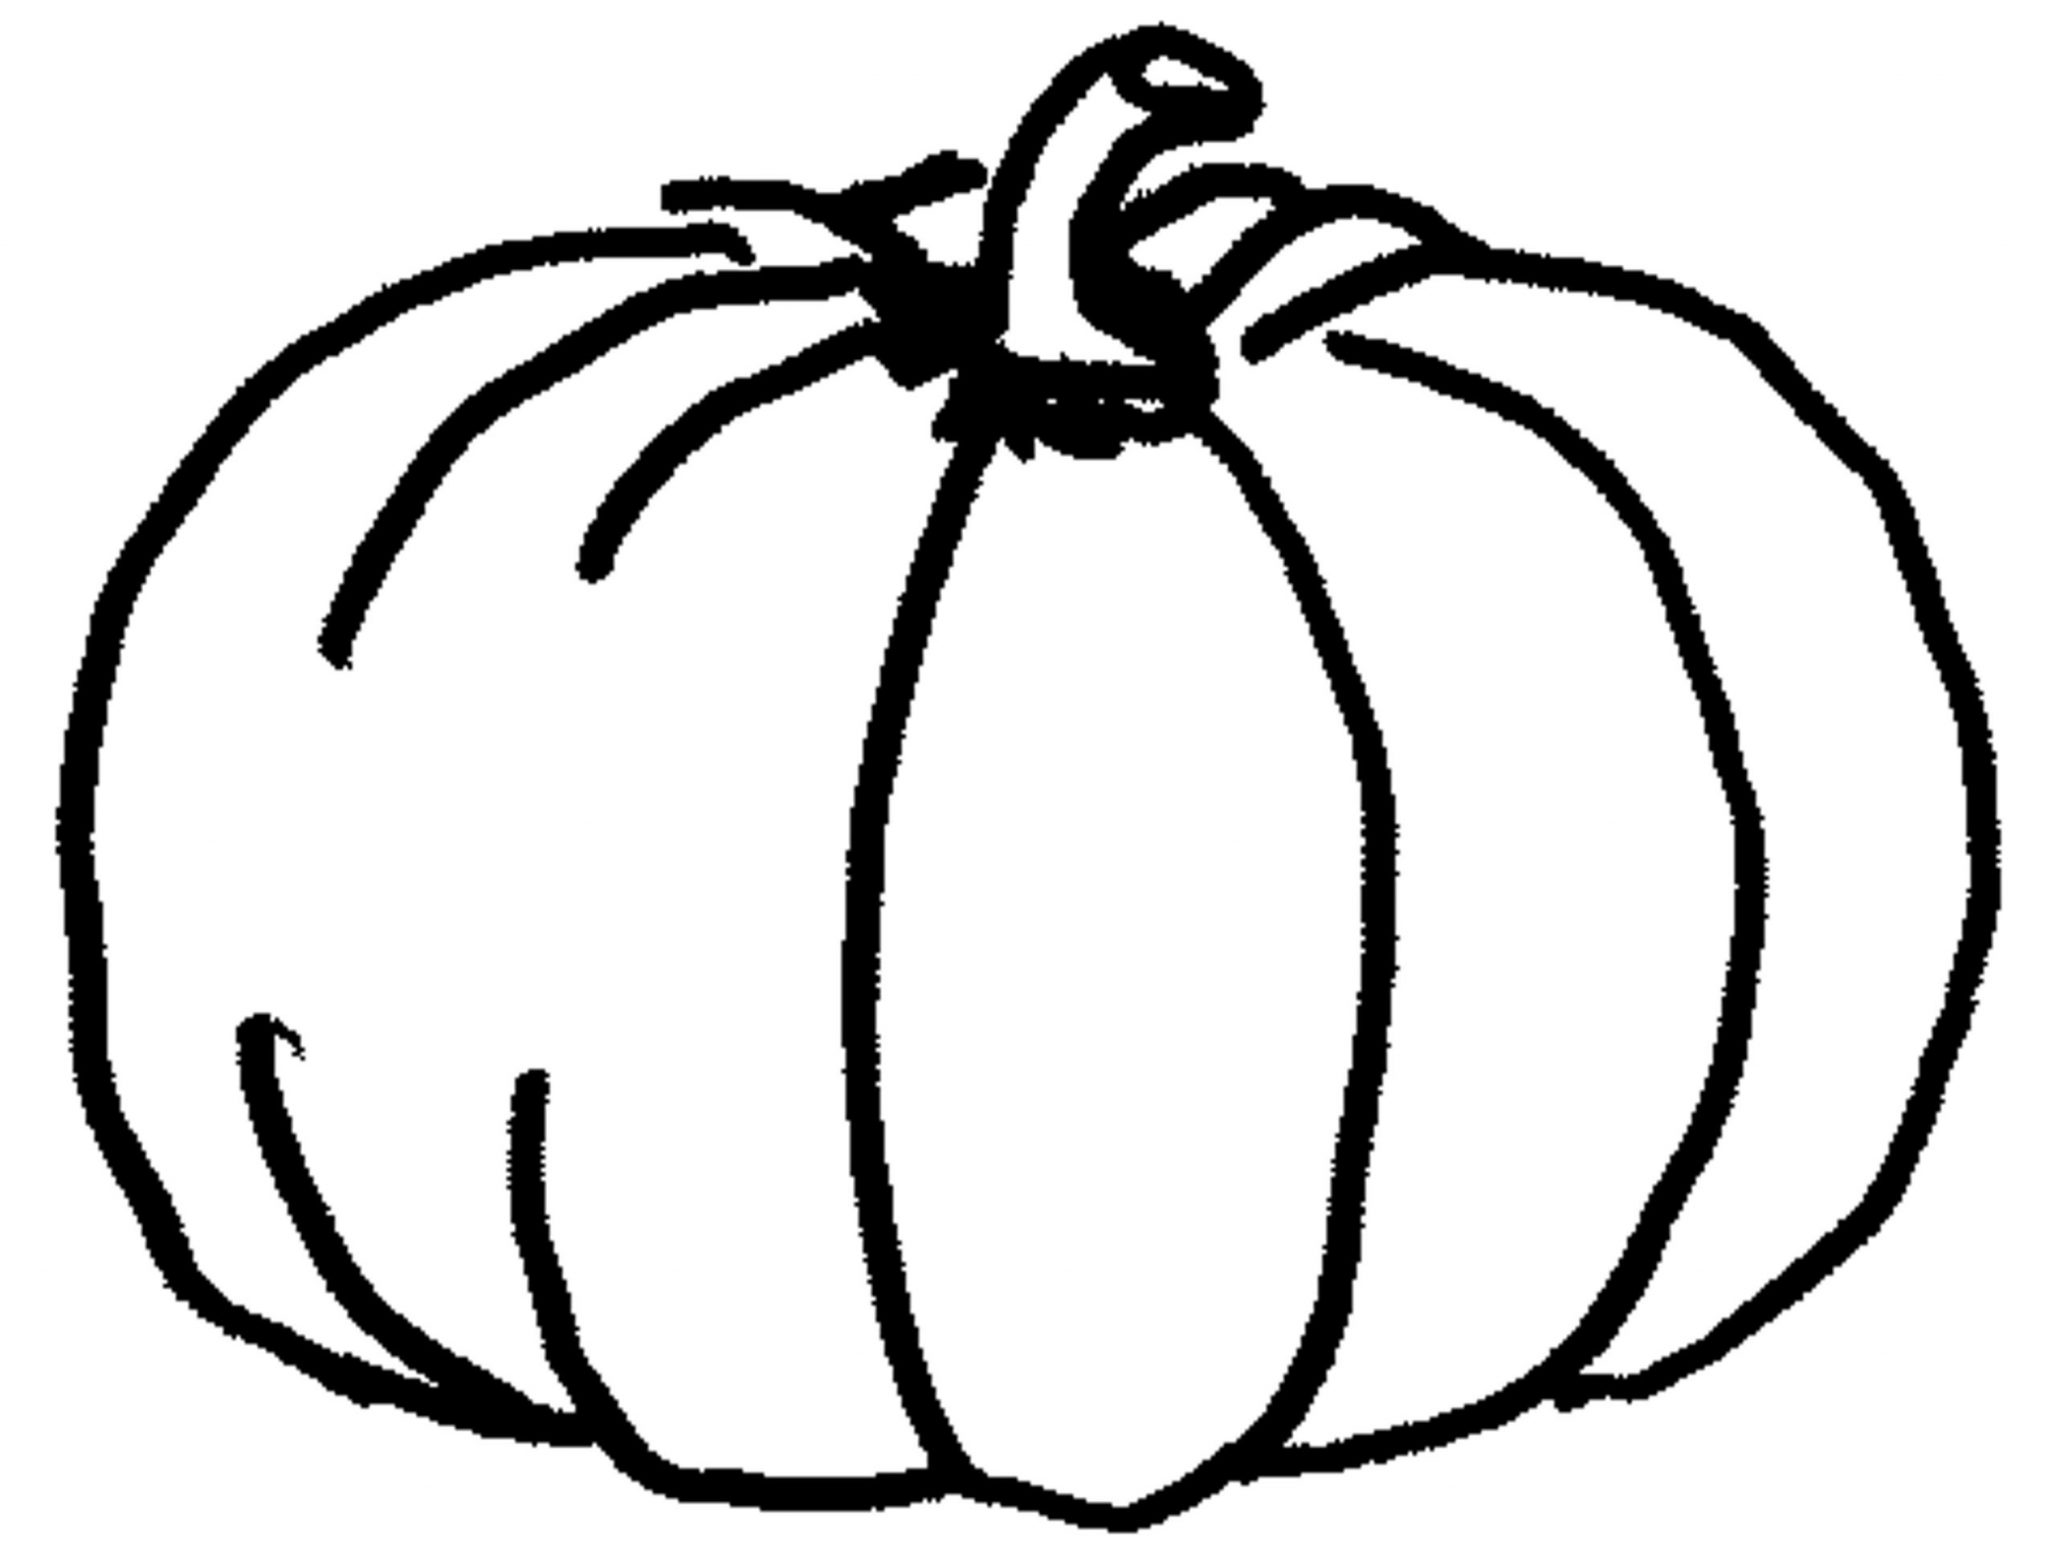 pumpkin colouring page free pumpkin coloring pages preschoolers at getcolorings page pumpkin colouring